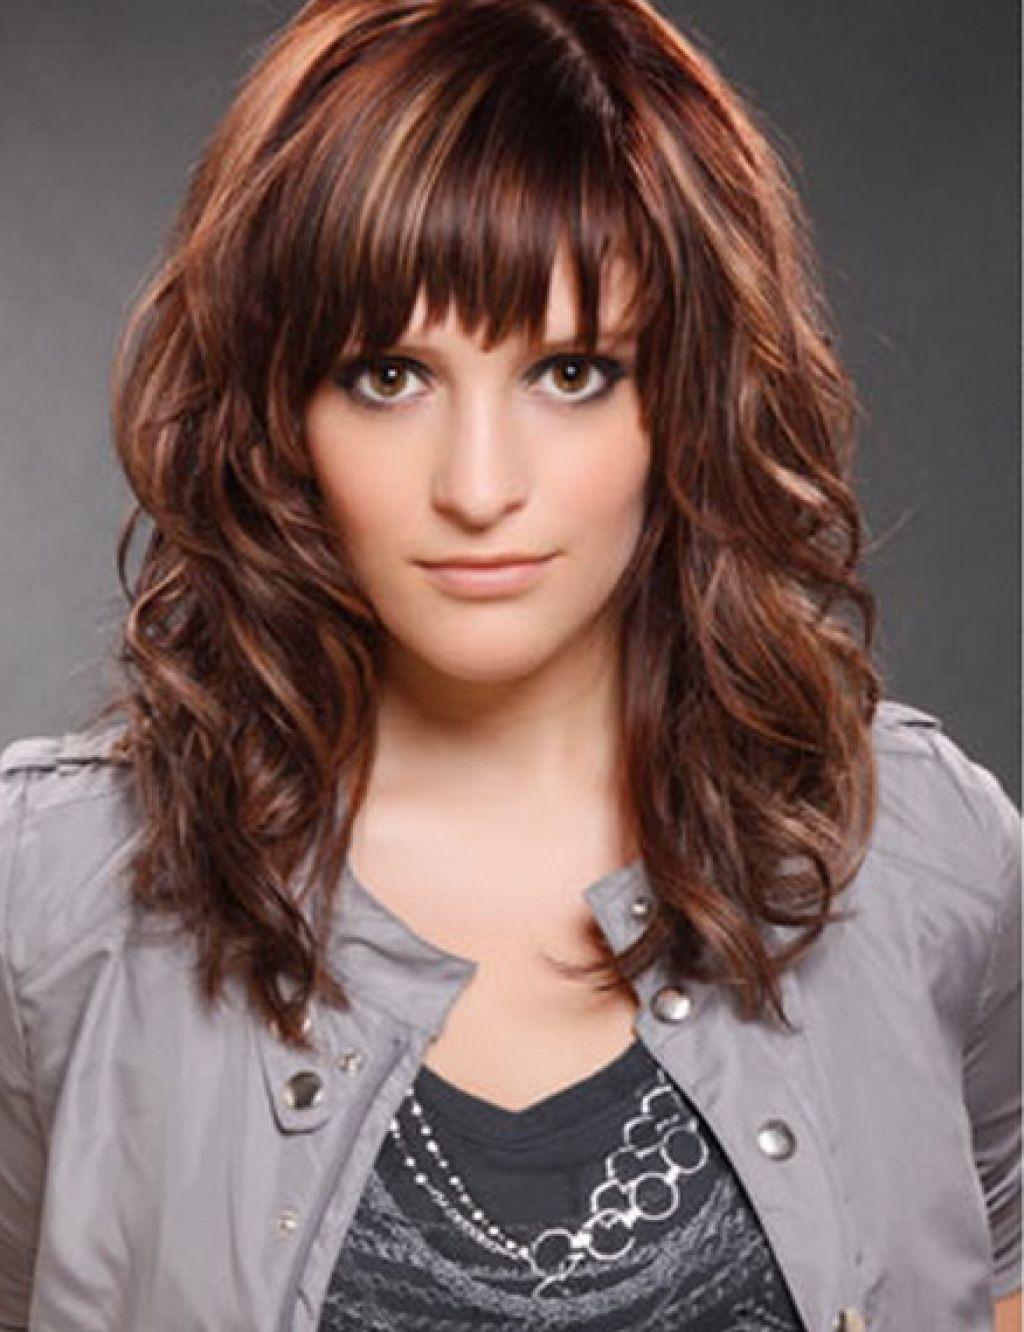 Cute Hairstyles For Bangs  Cute hairstyles for medium curly hair with side bangs